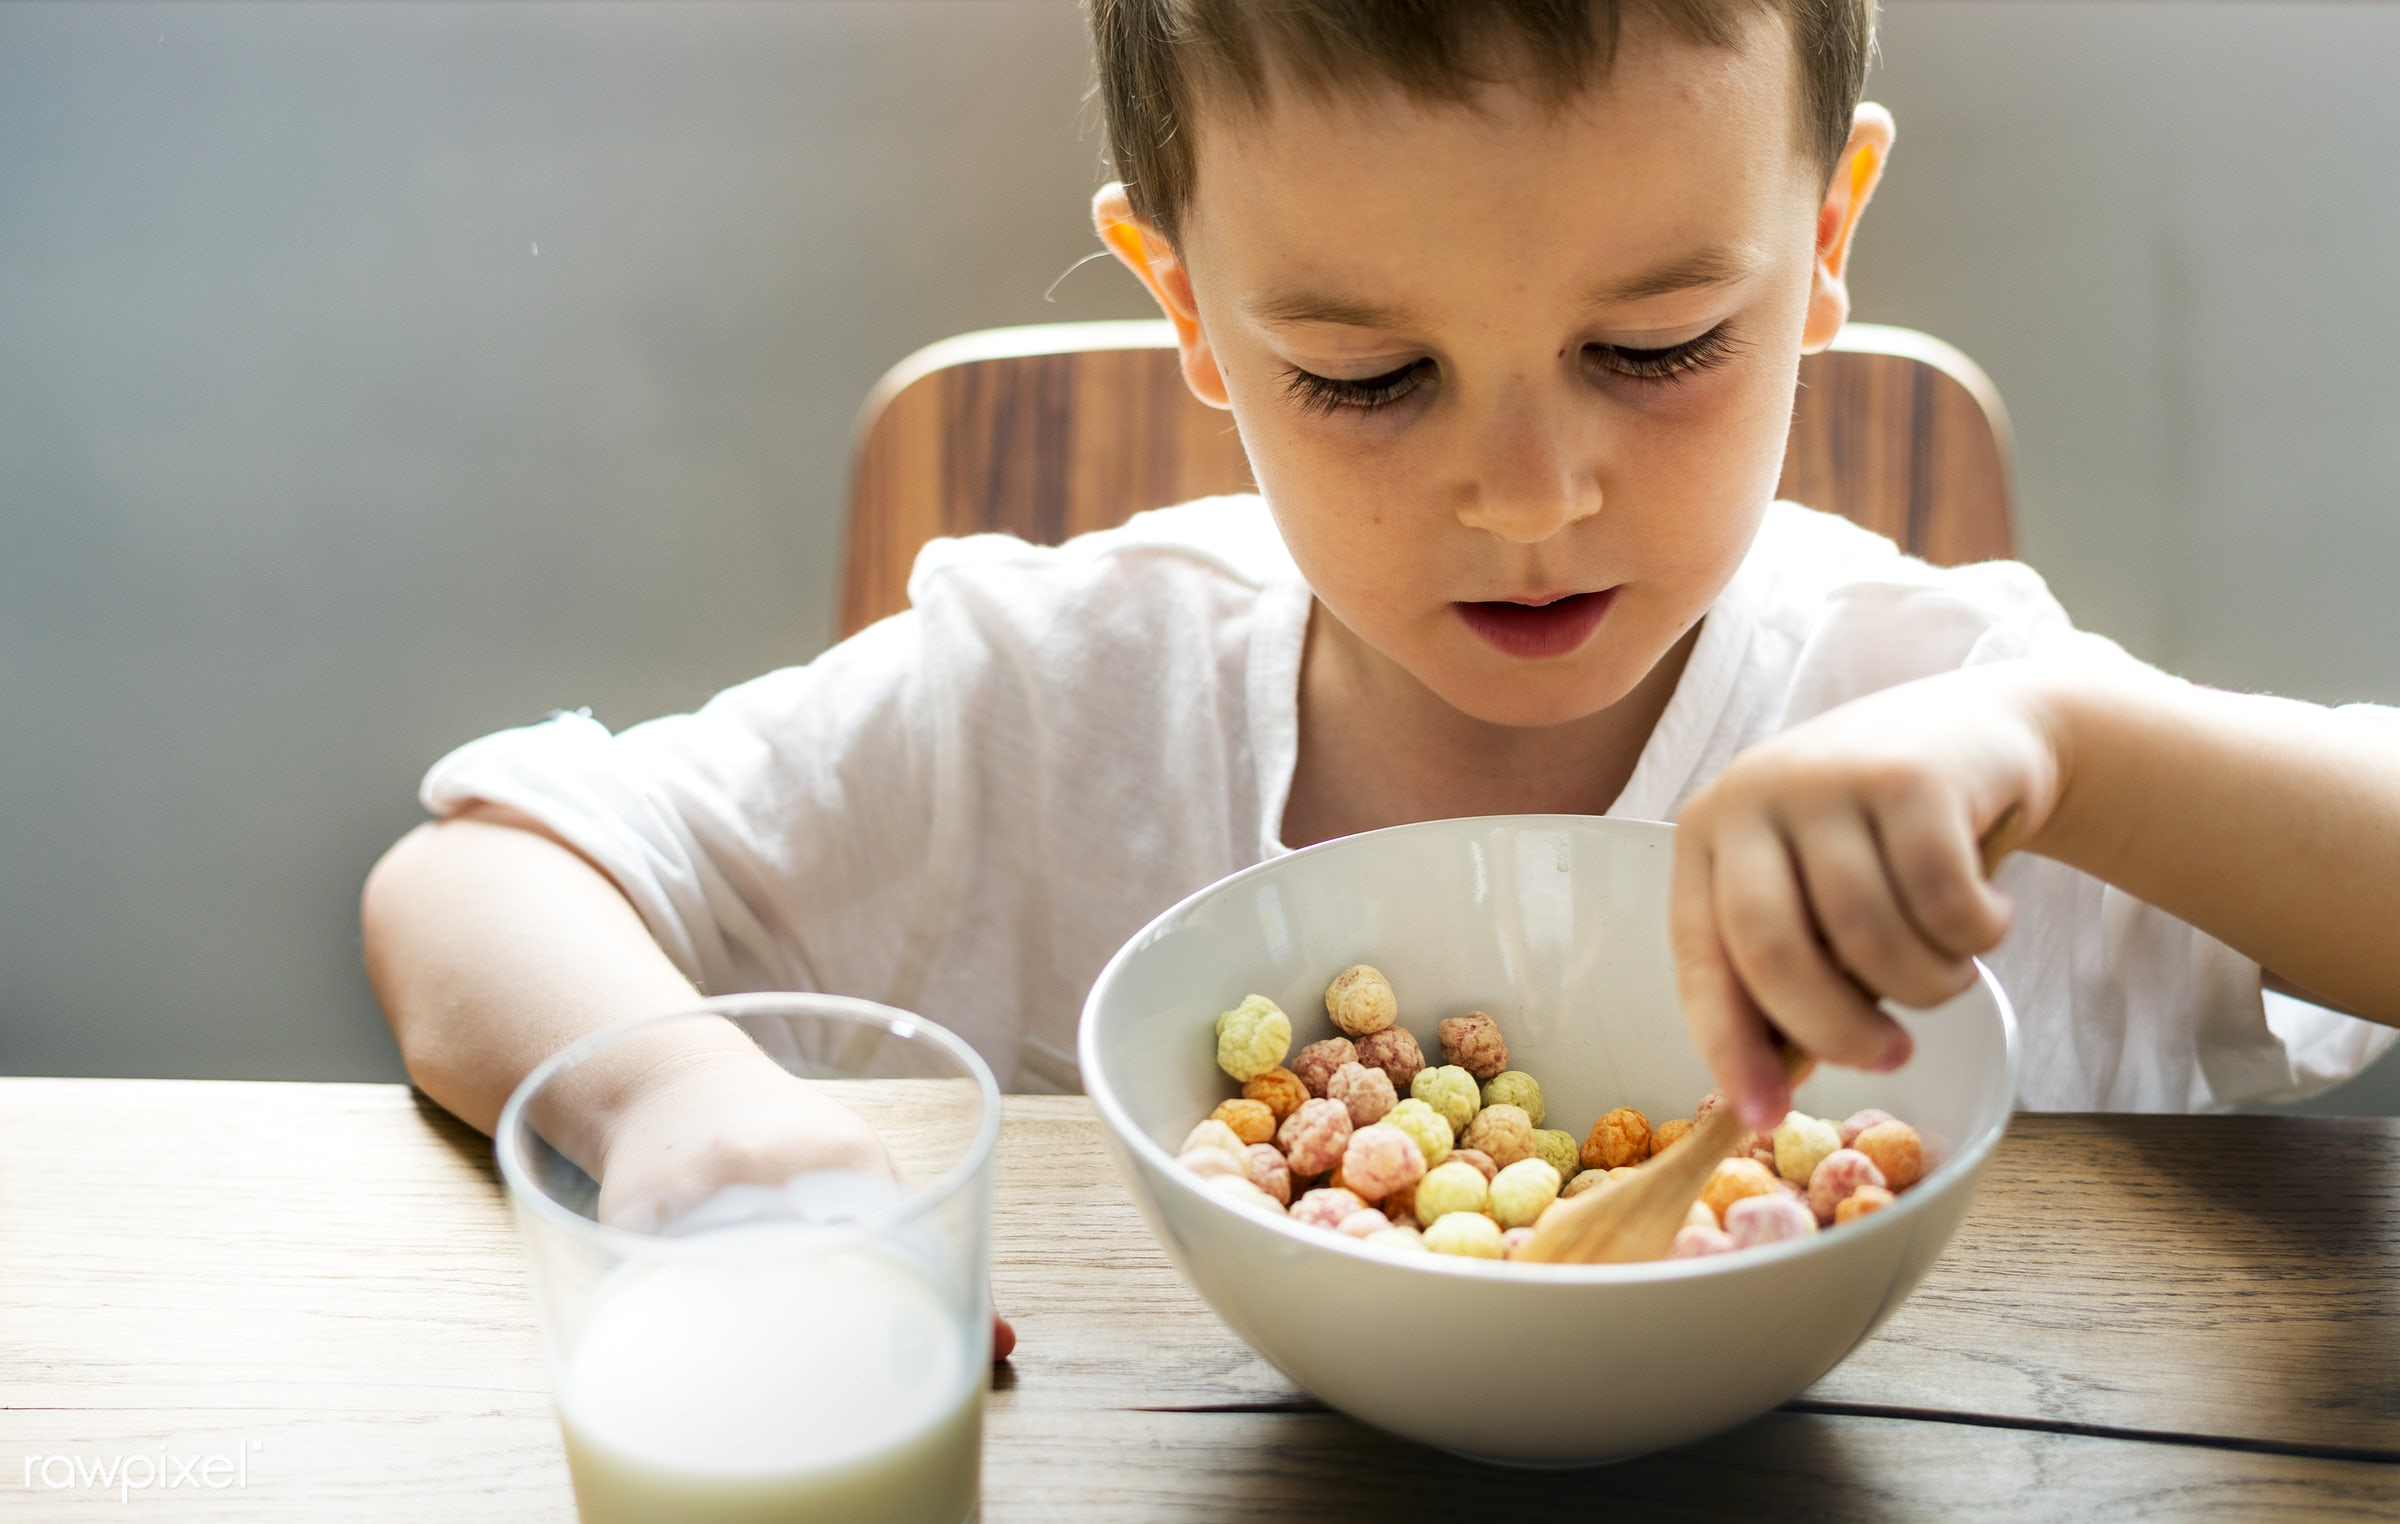 milk, adorable, background, bond, bowl, boy, breakfast, cereal, cheerful, child, children, cornflakes, cute, day, early,...